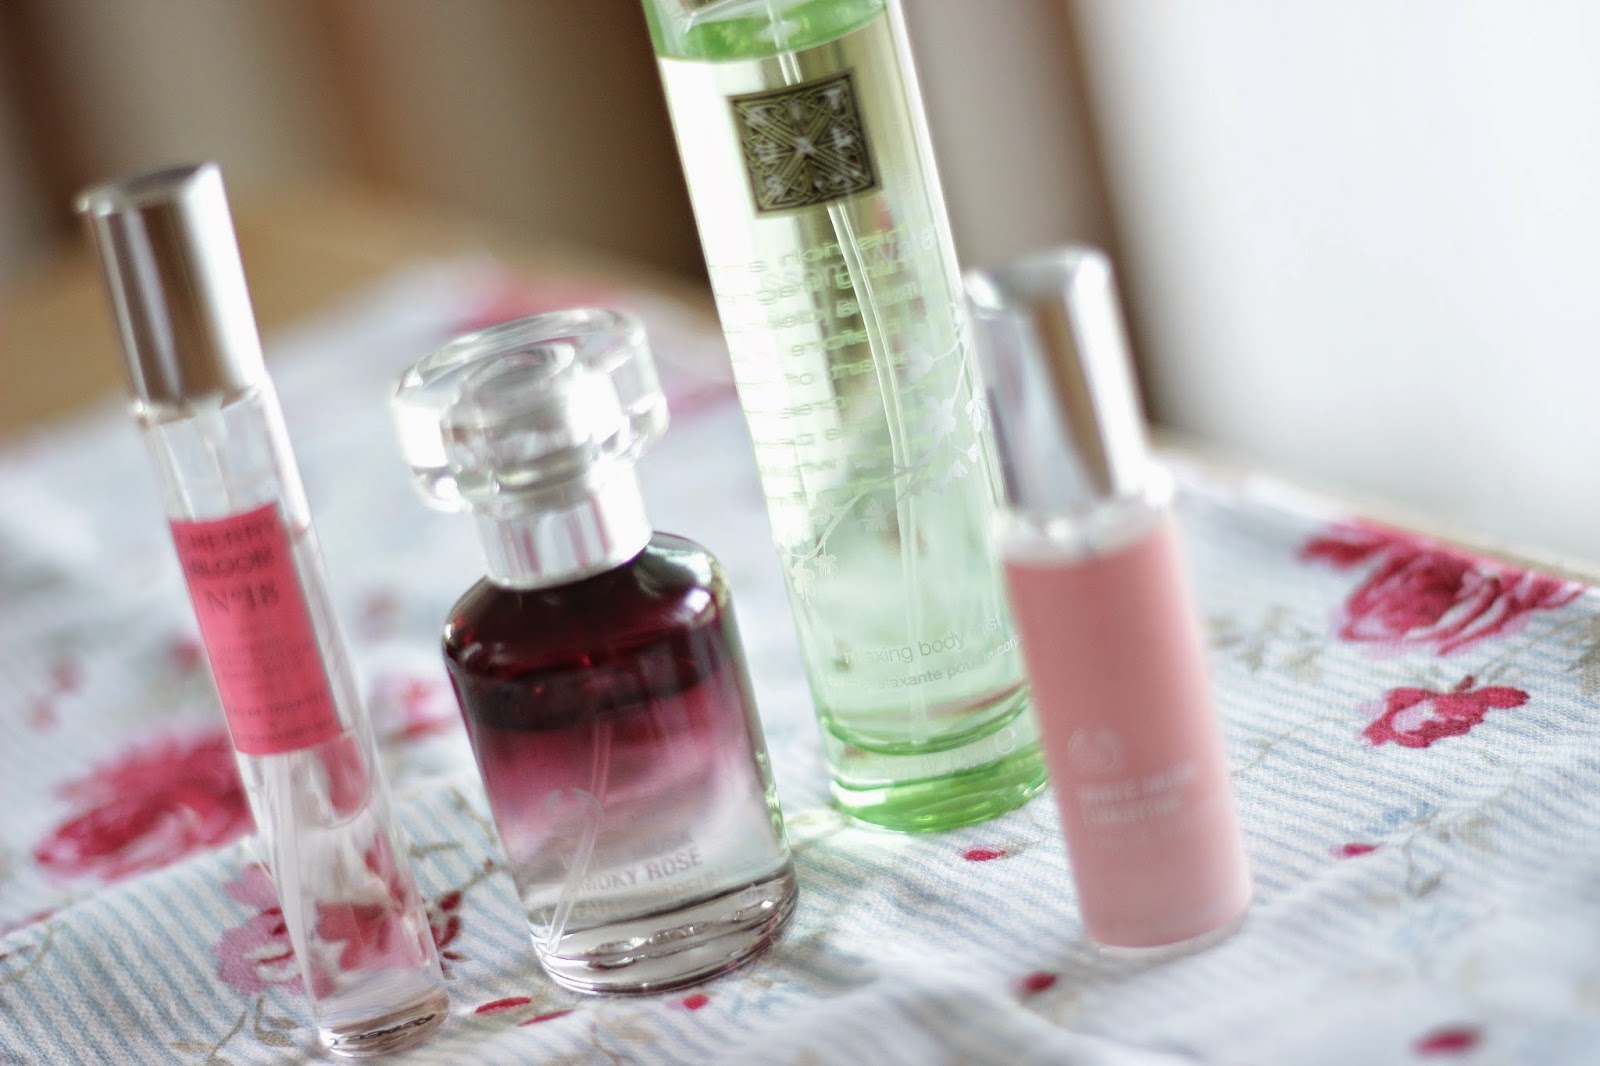 parfums geurtjes herfst winter